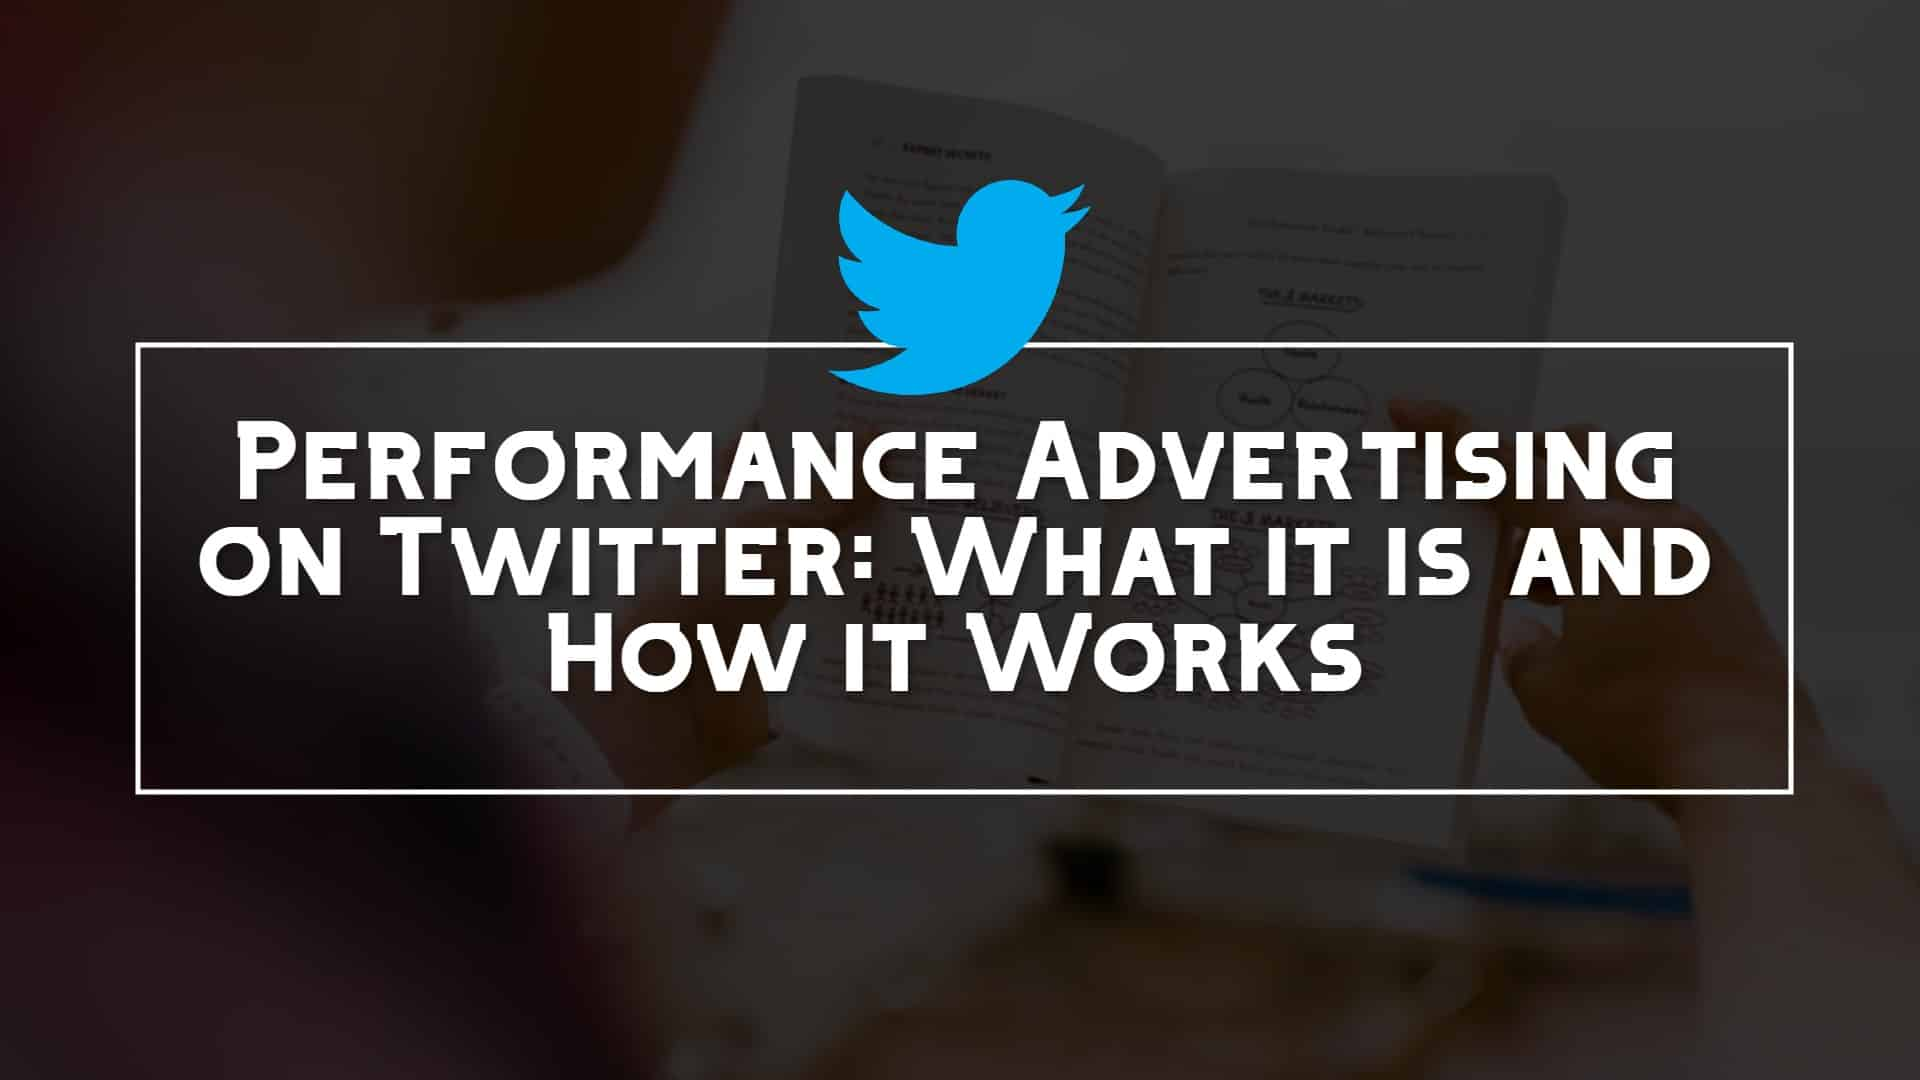 Performance Advertising On Twitter: What It is and How It Works